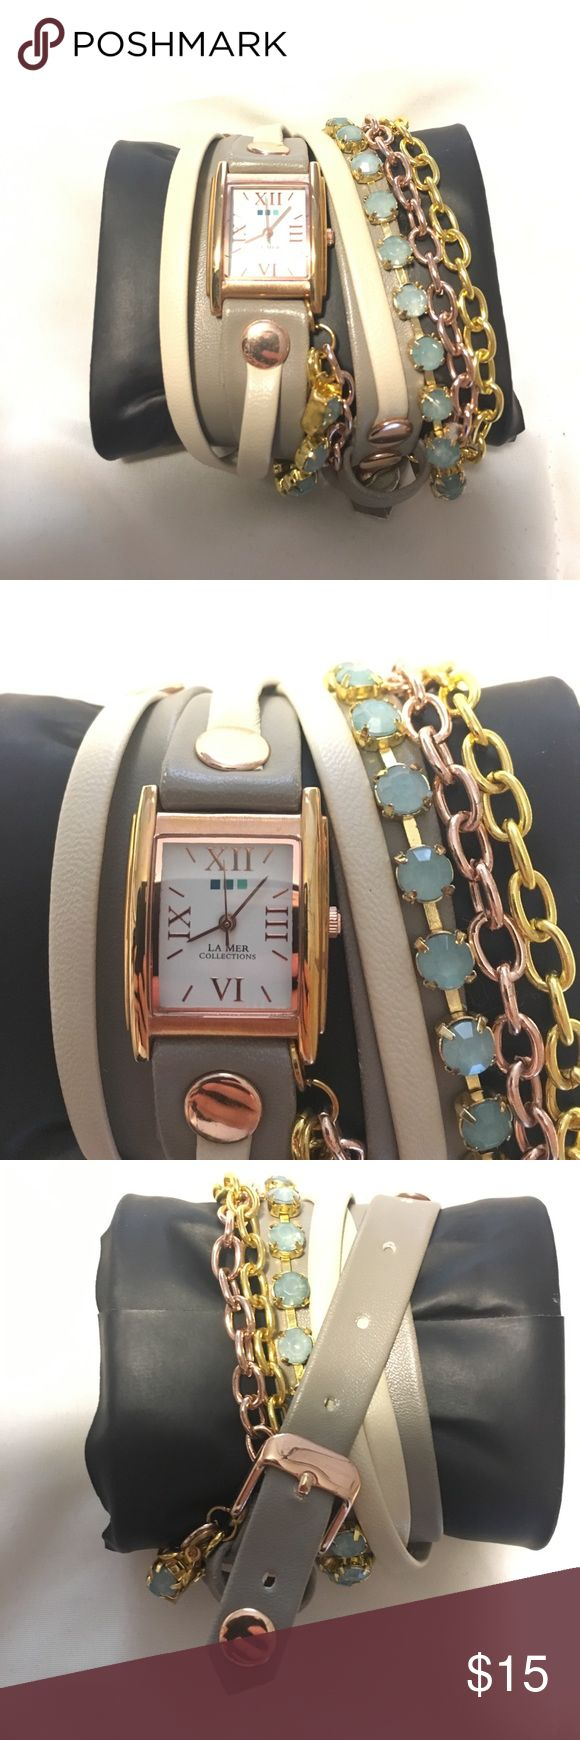 La Mer Collections Watch Perfect condition! Wrap around watch. Grey/cream/gold/turquoise tones. Used but in awesome condition. Needs a battery. La Mer Accessories Watches